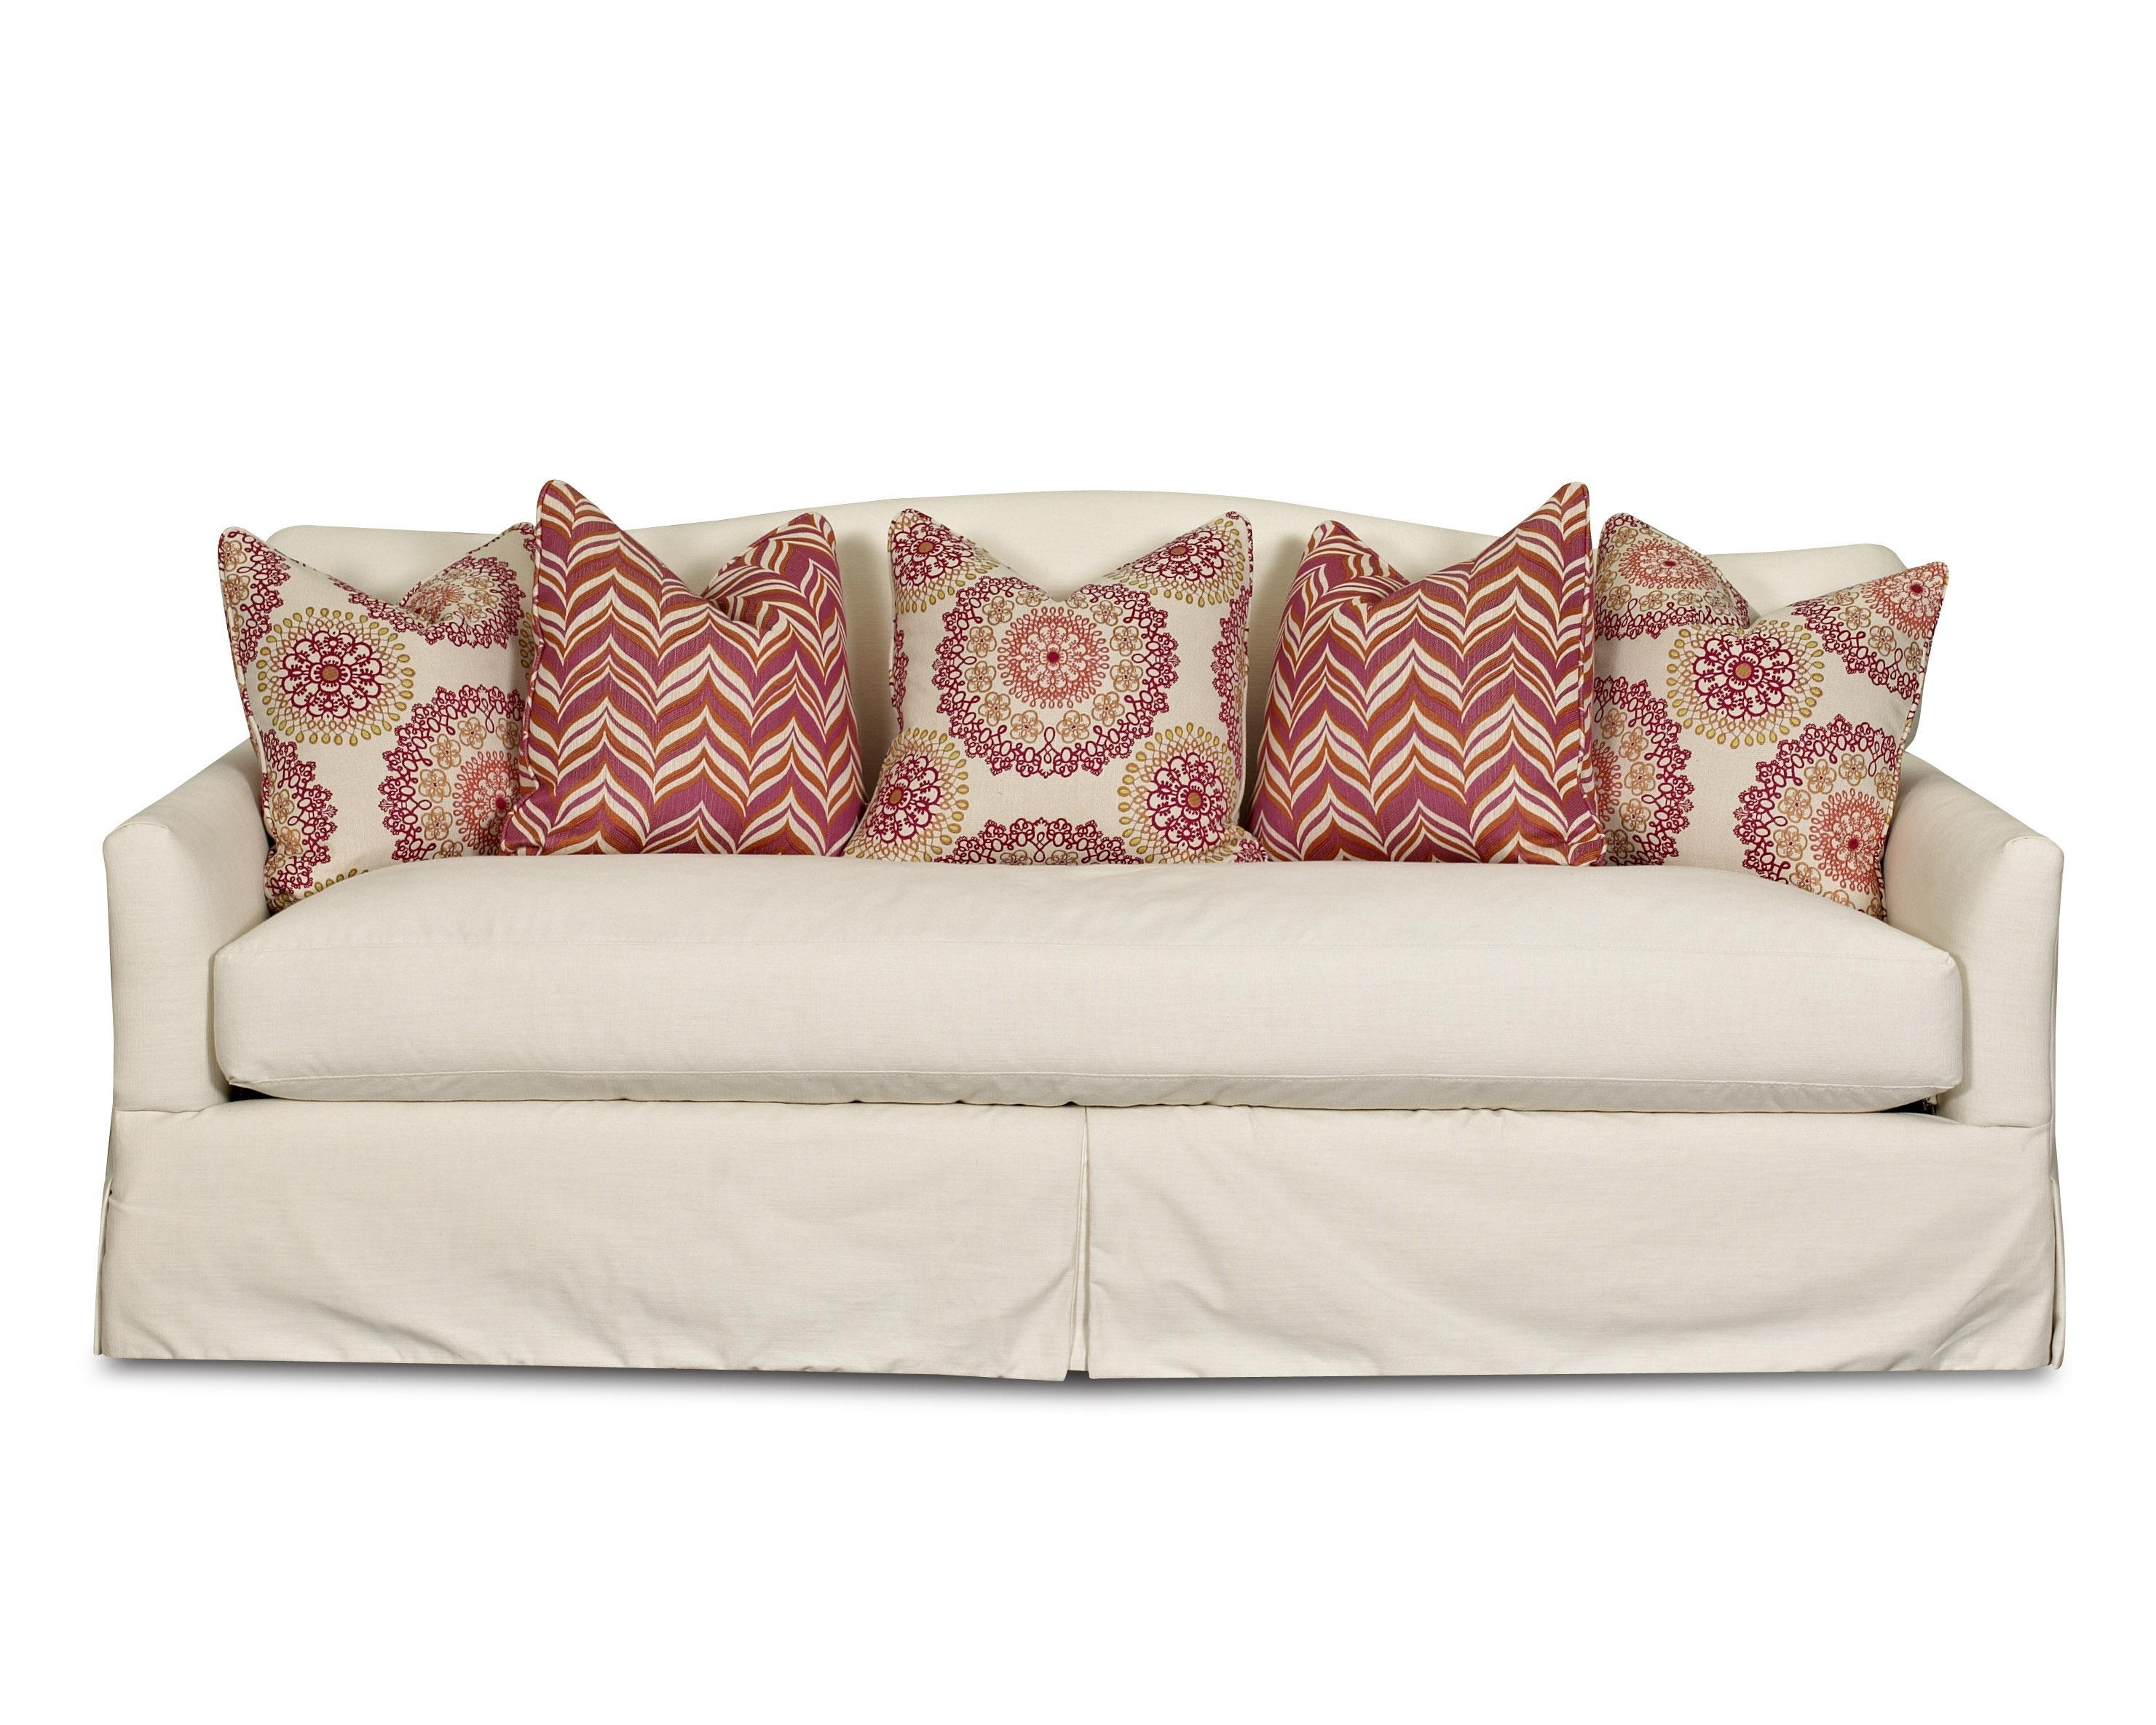 Transitional Stationary Sofa With Bench Seat Cushion, Camel Back For Bench Cushion Sofas (View 13 of 20)